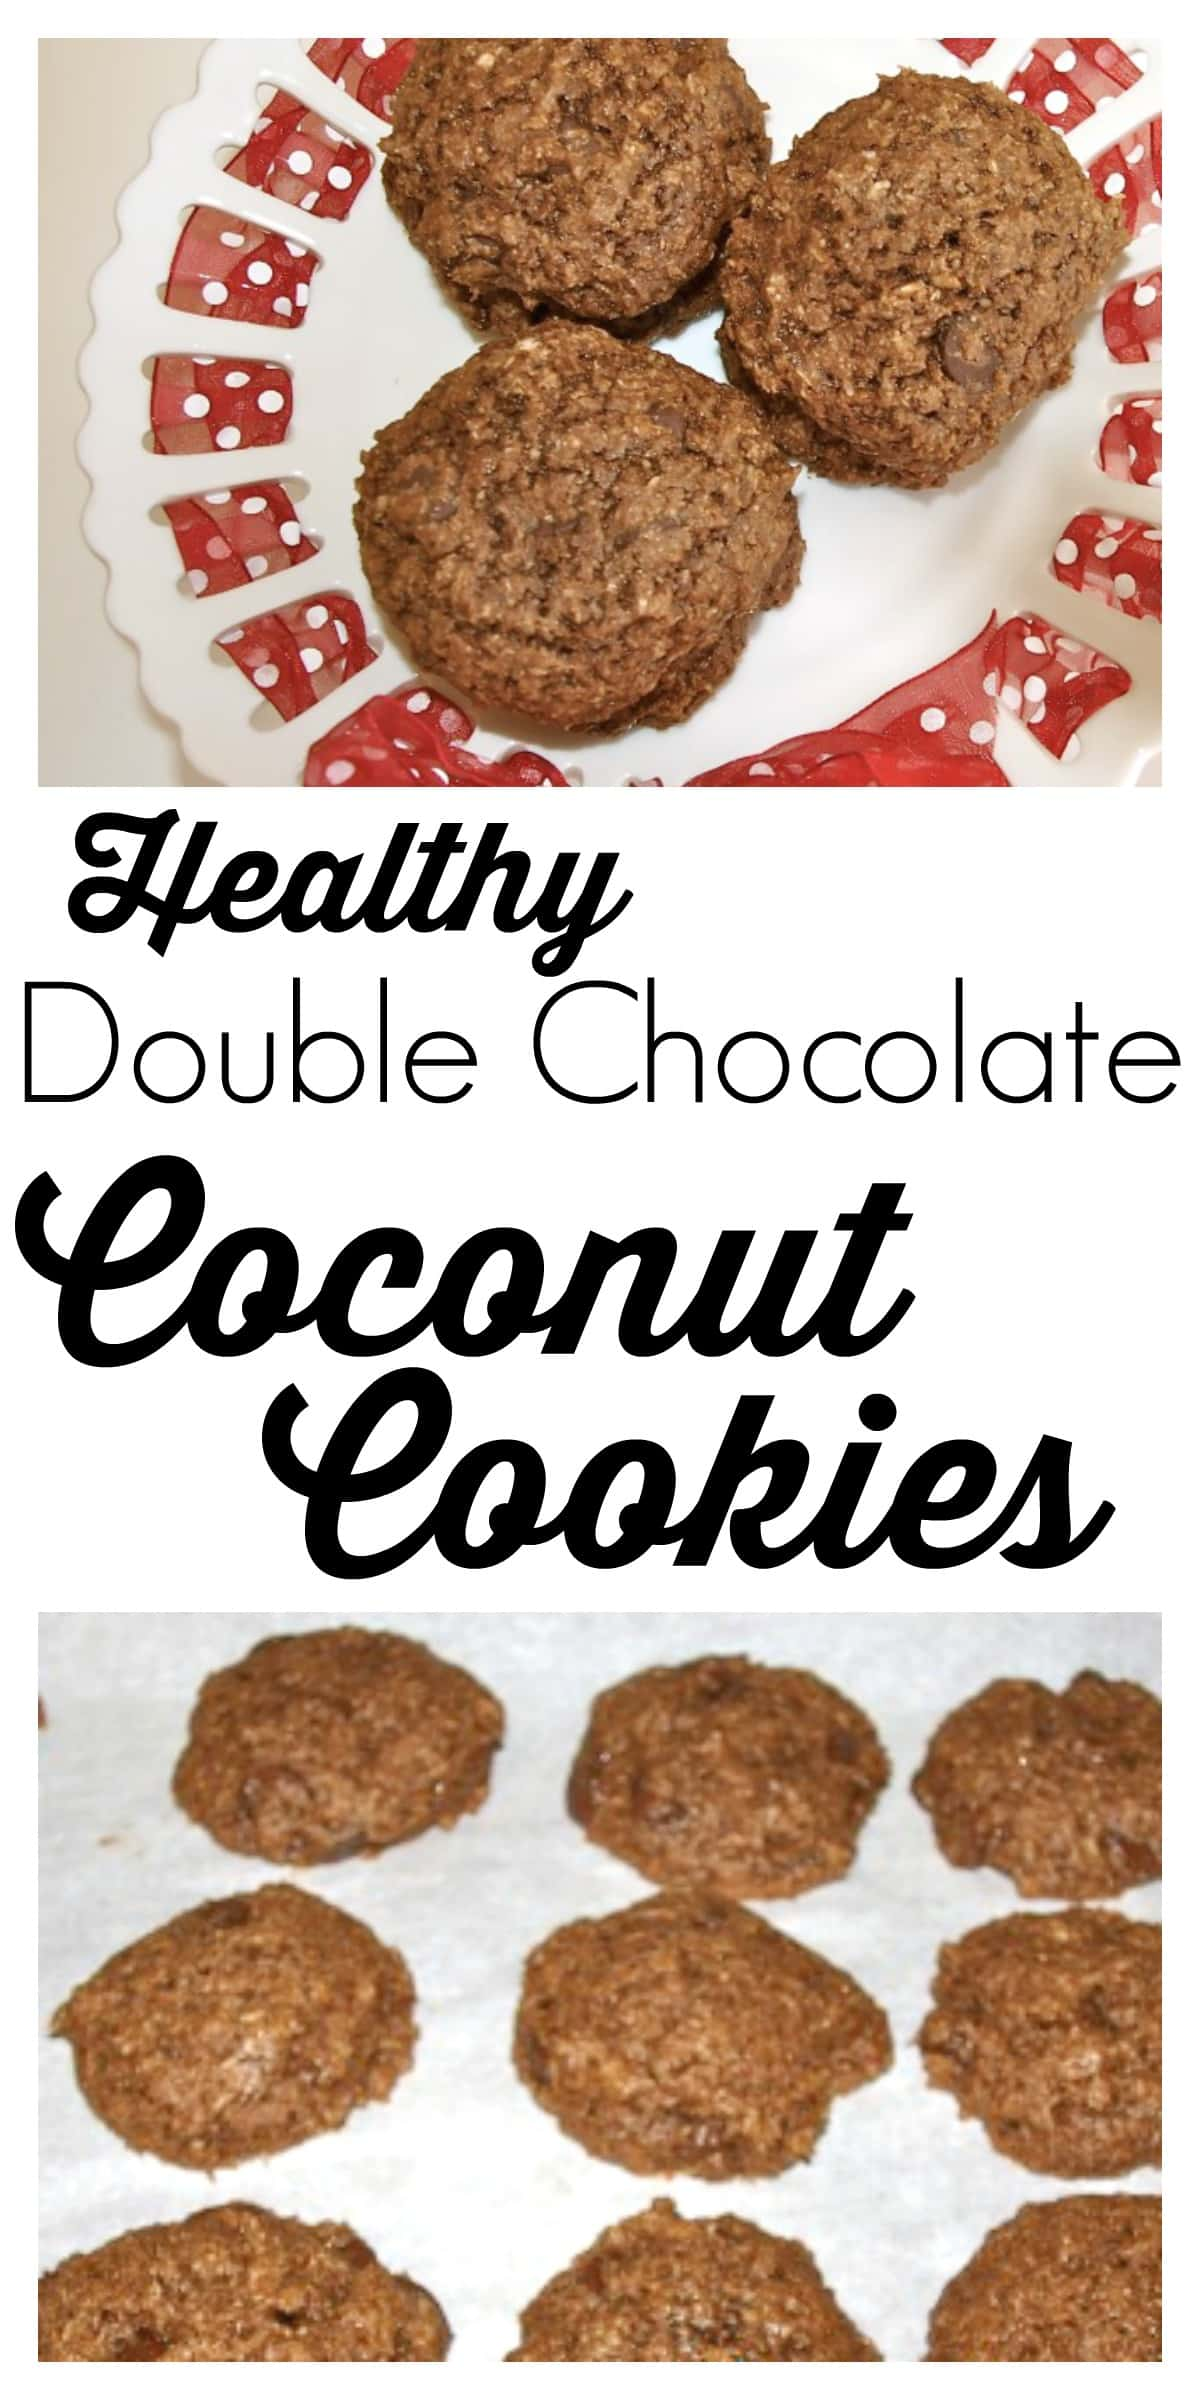 These HEALTHY Double Chocolate Coconut Cookies are 100% whole grain, dairy-free, and made with NO refined sugar! This recipe is amazing!